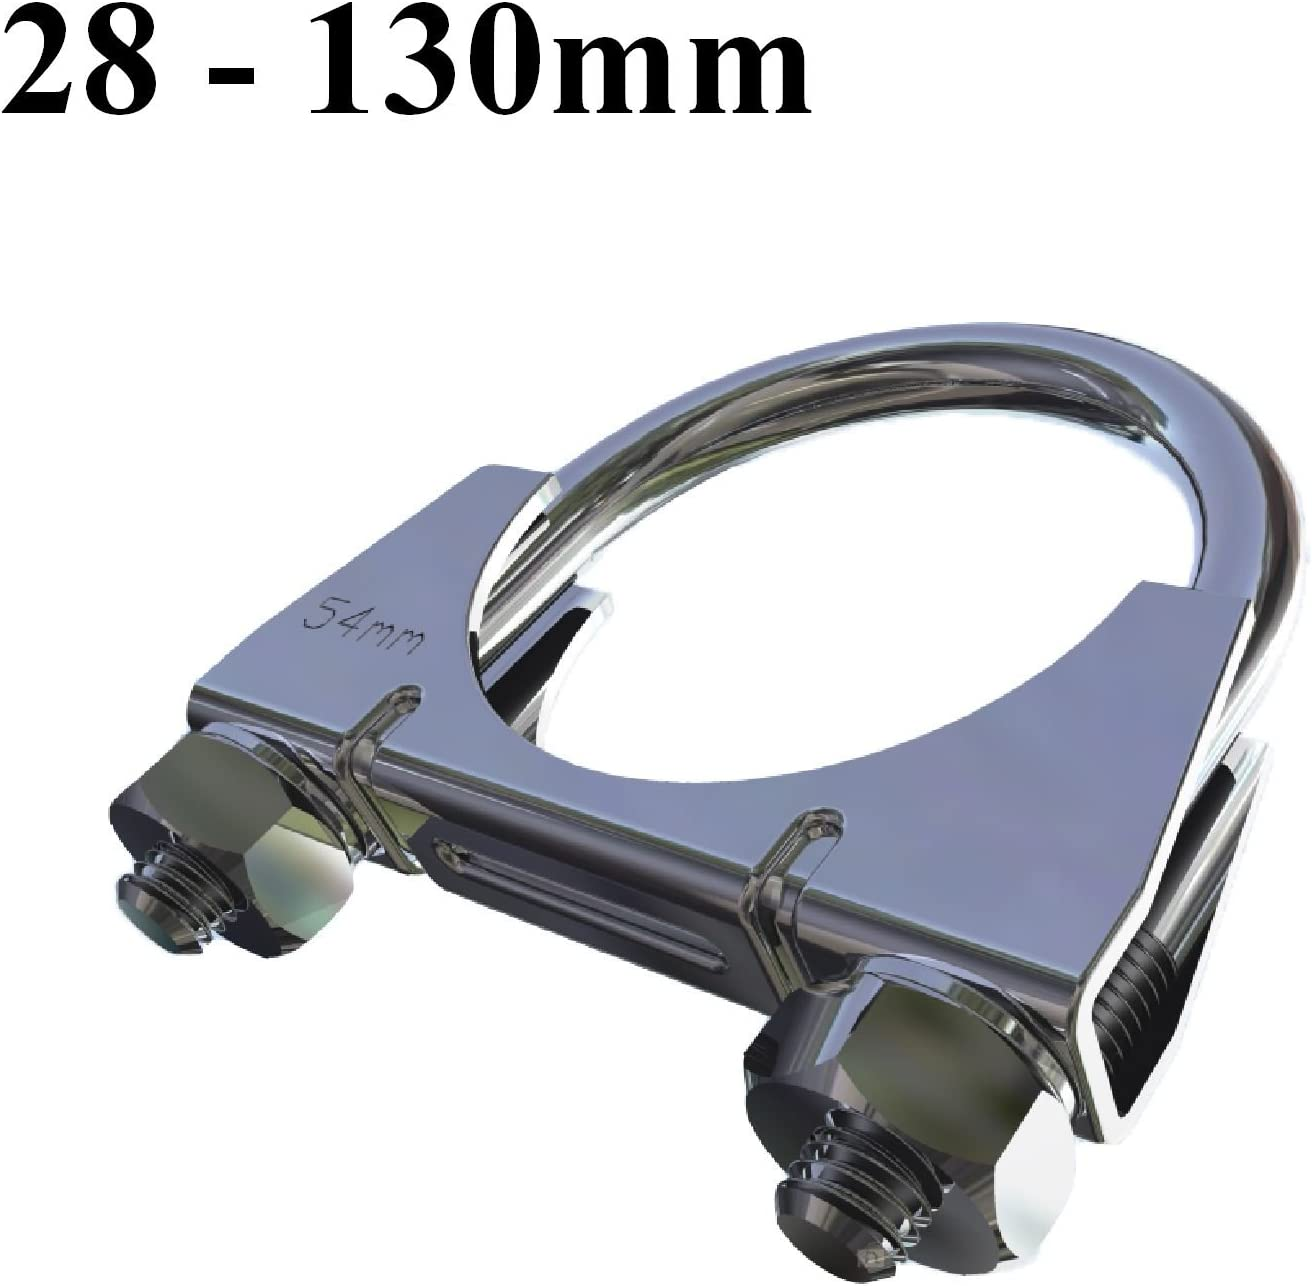 35mm Smarthome Universal U Bolt Clamp//Heavy Duty Exhaust Clamps//TV Sky Aerial Pipe